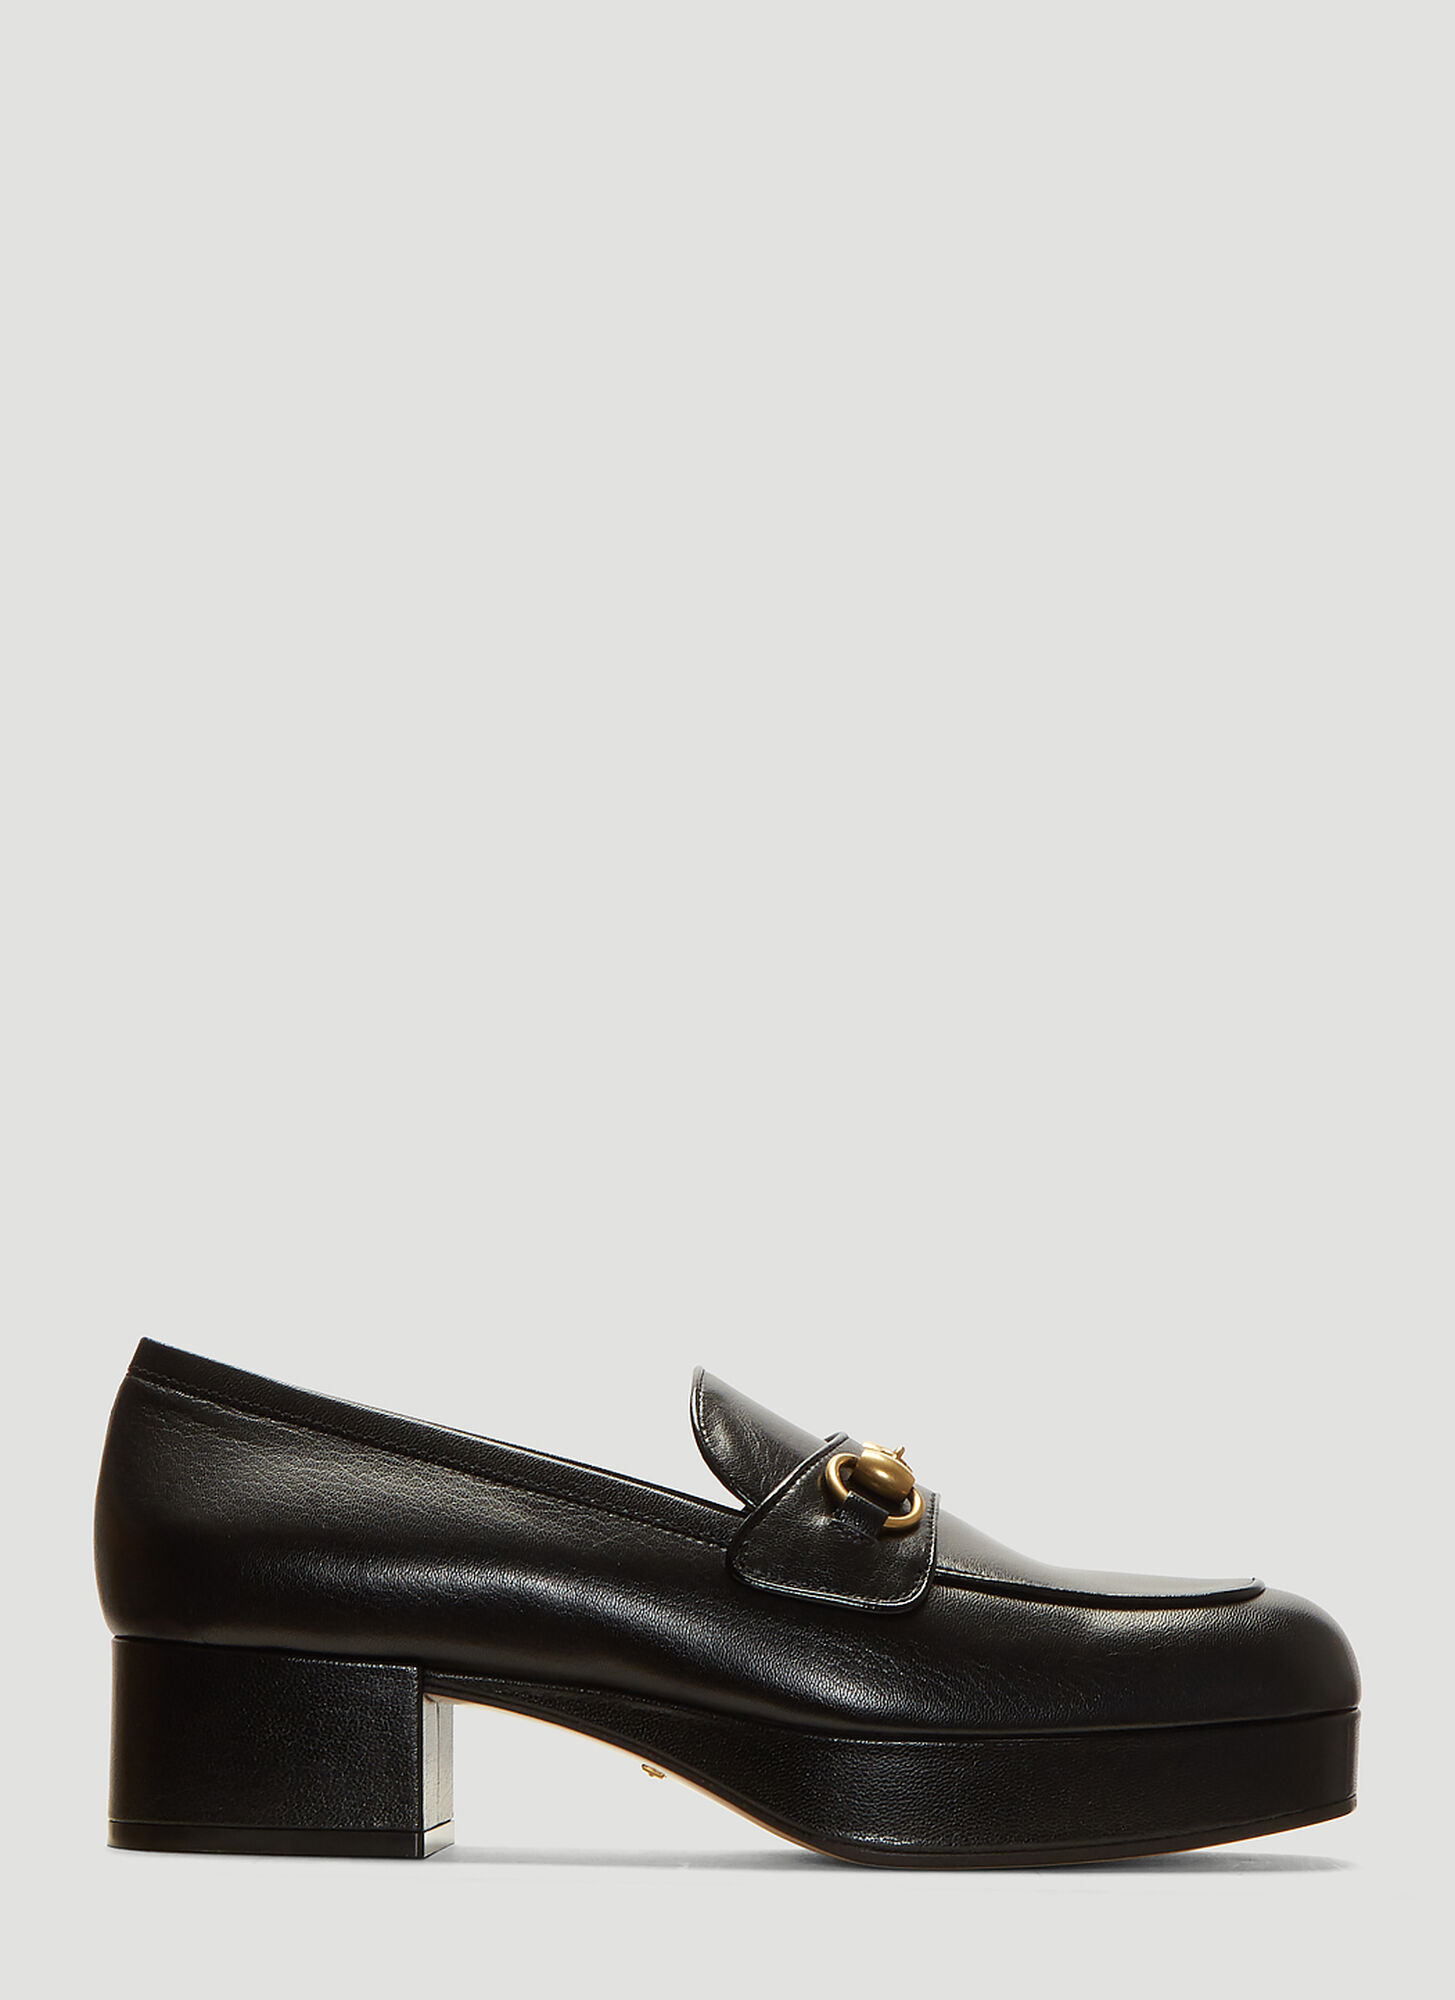 Gucci Platform Horsebit Loafers in Black